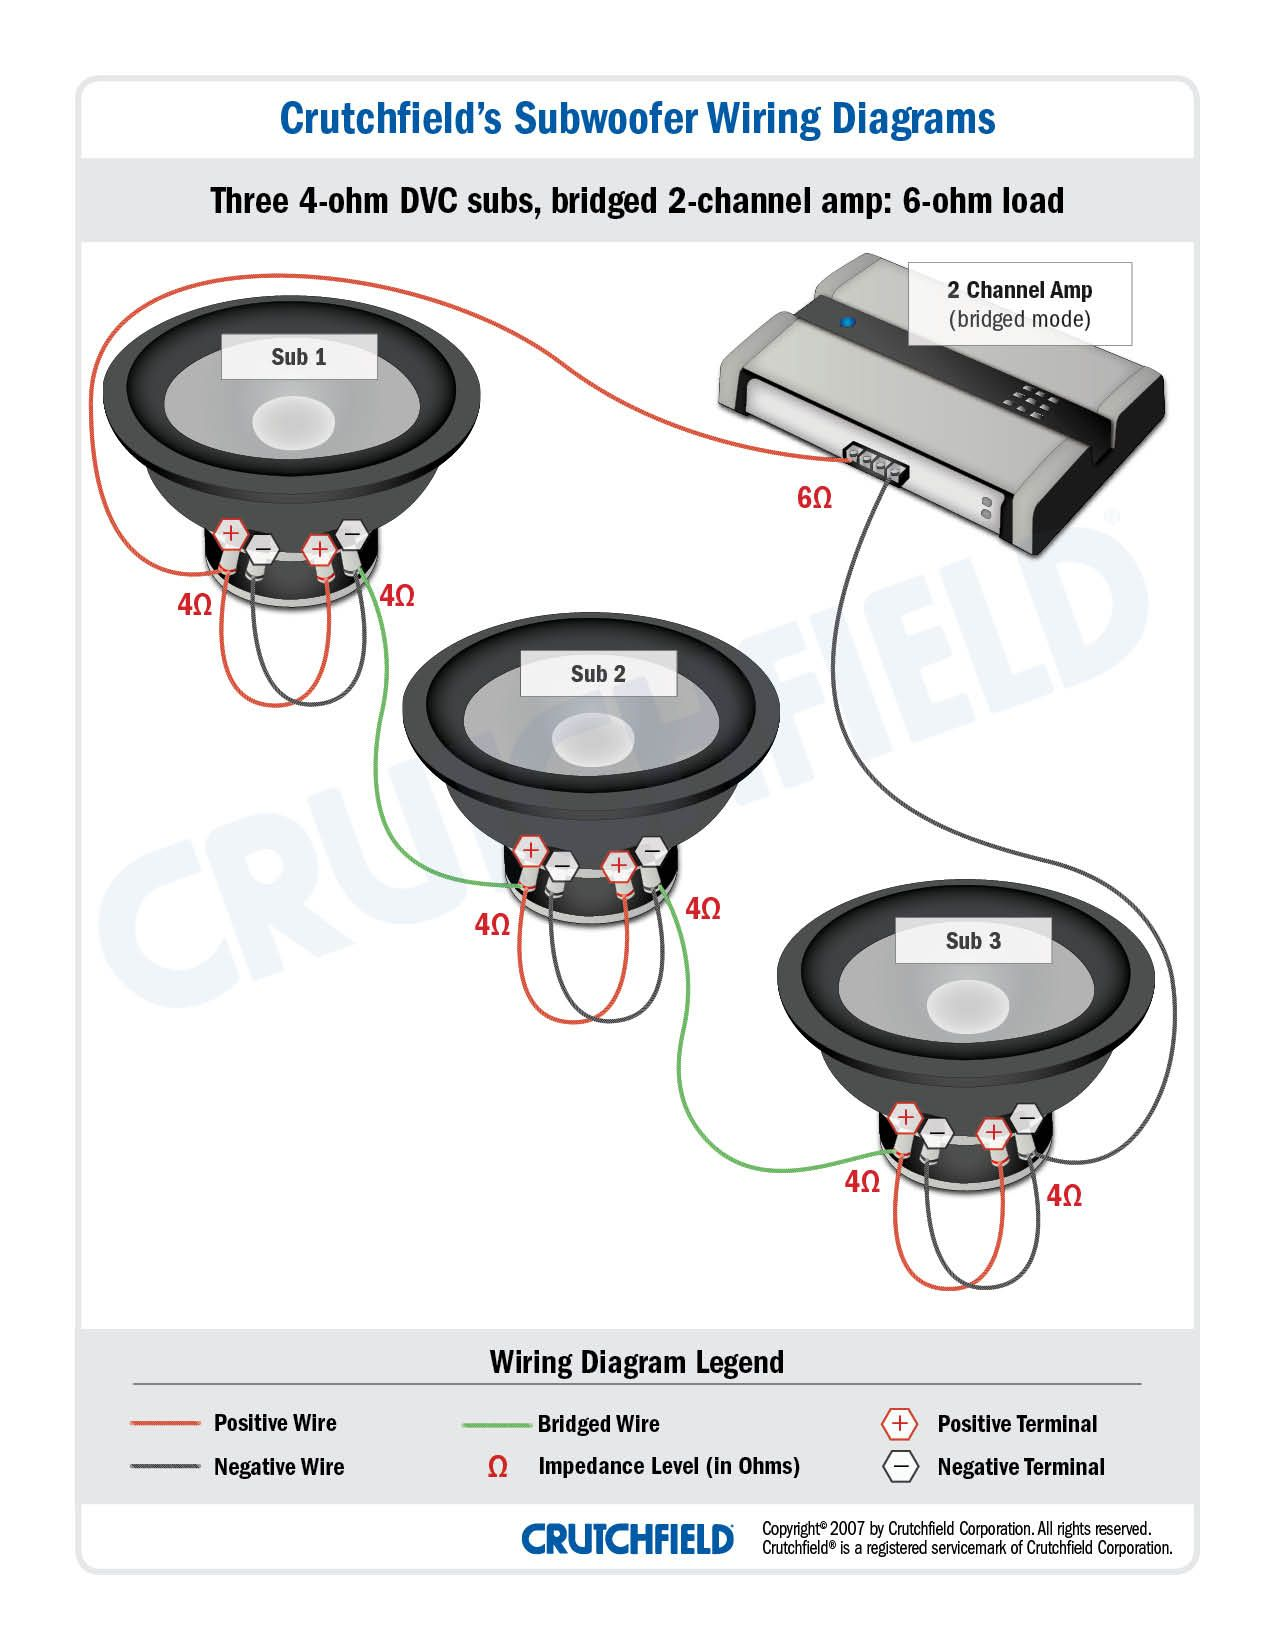 car audio crossover wiring diagram 1990 ford bronco top 10 subwoofer free download 3 dvc 4 ohm